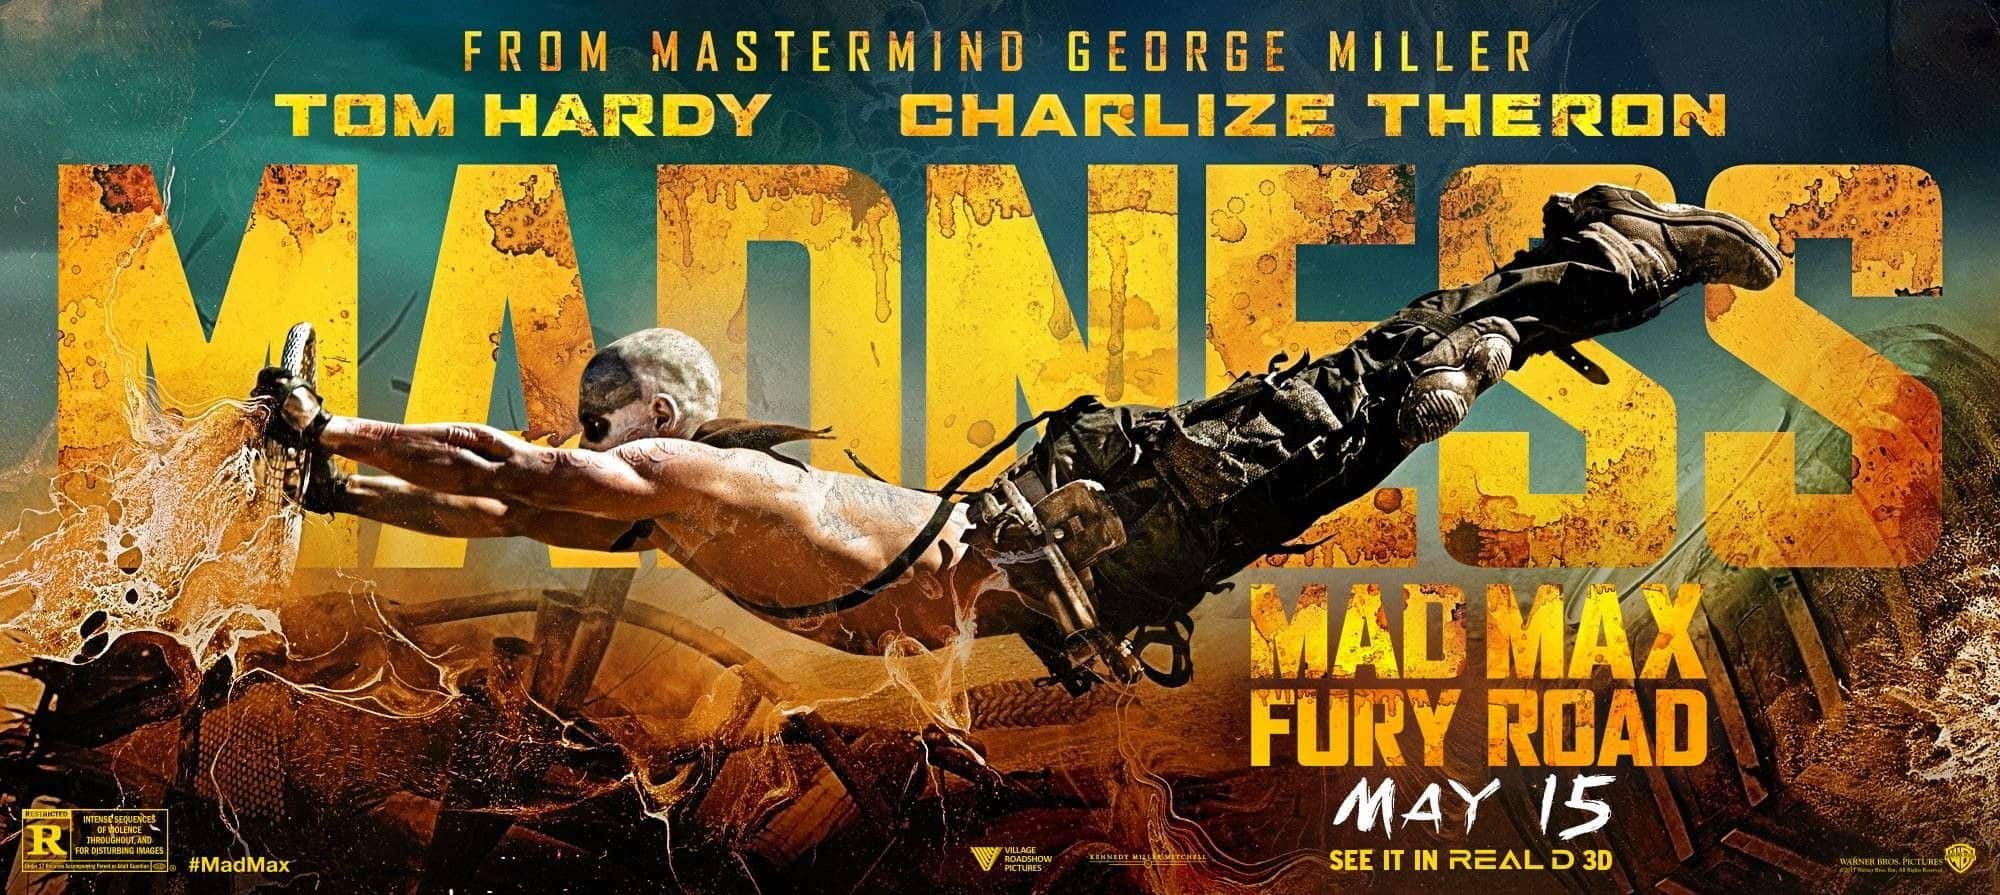 Image result for mad max fury road film banner